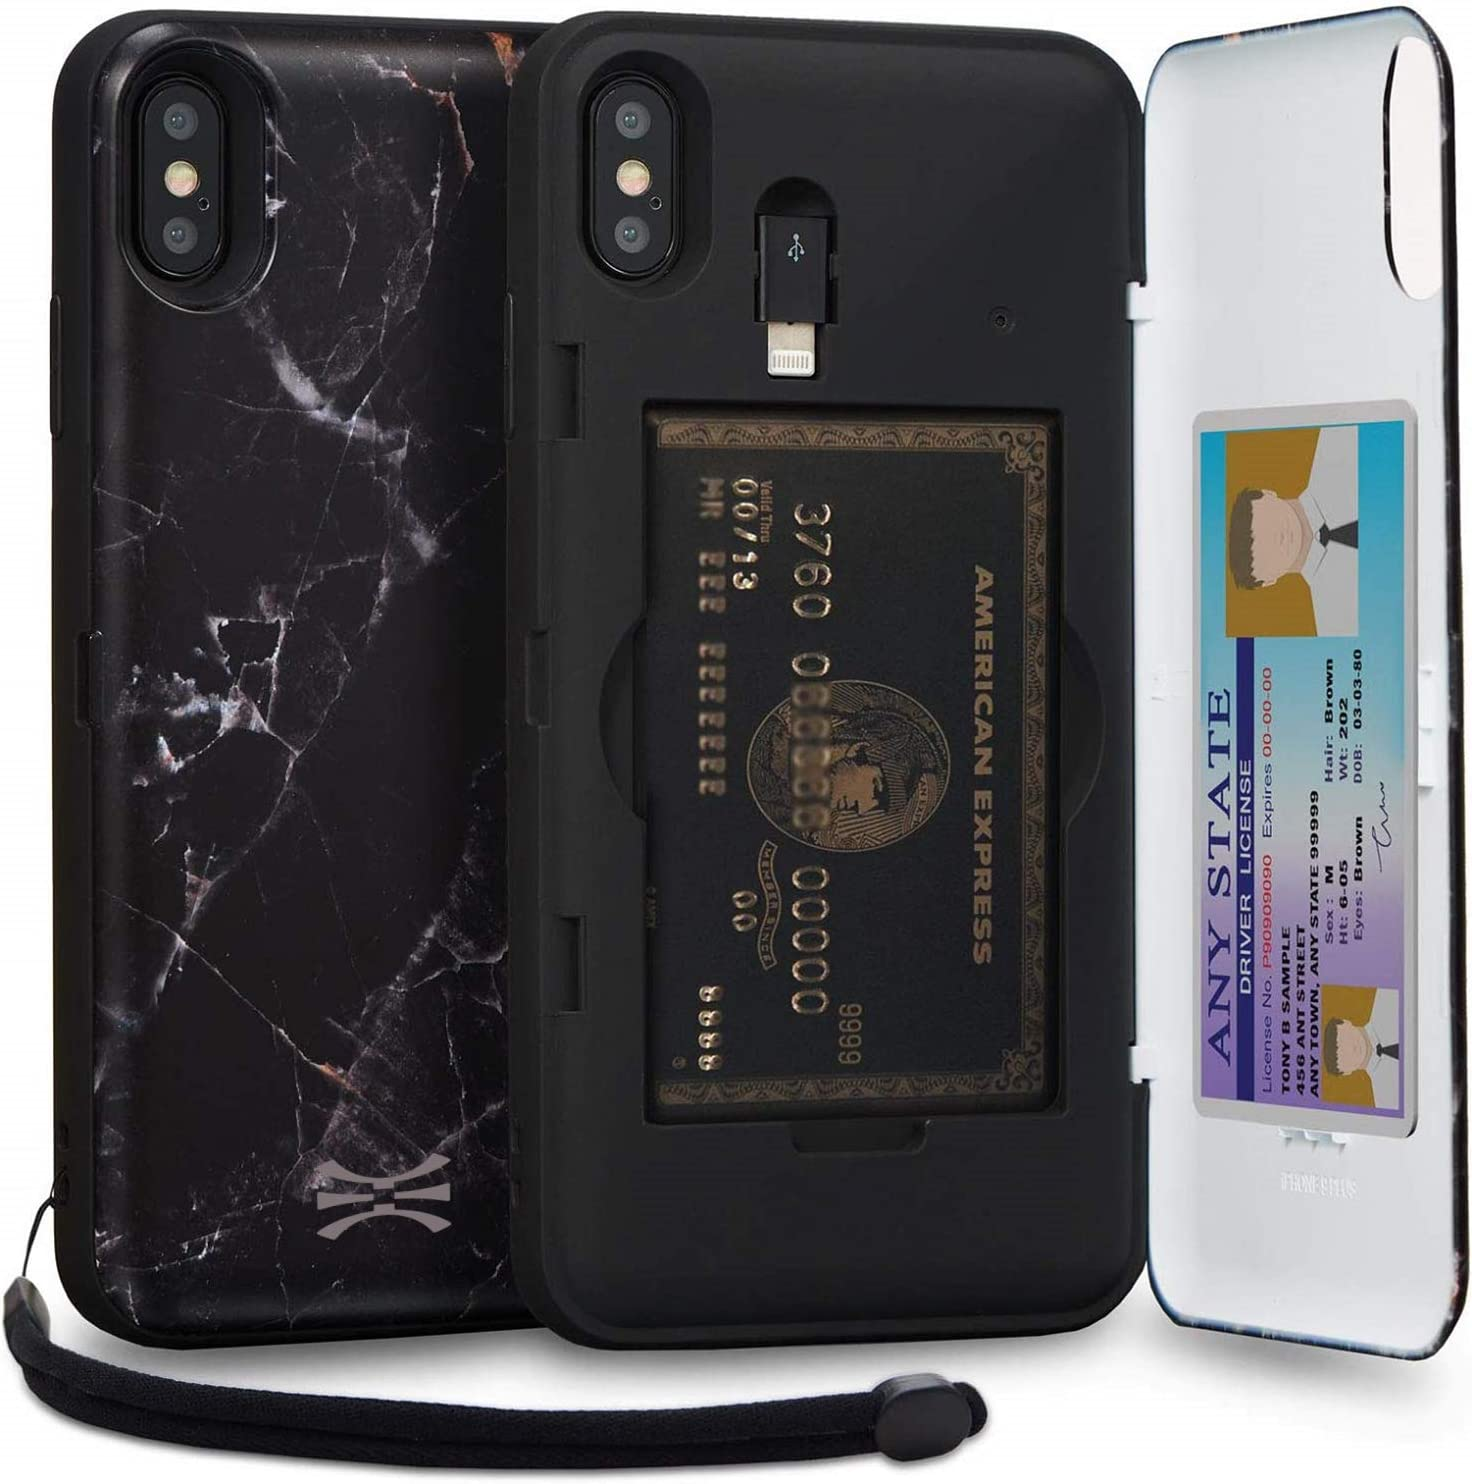 TORU CX PRO Compatible with iPhone Xs Max Case - Protective Dual Layer Wallet Pattern with Hidden Card Holder + ID Card Slot Hard Cover, Strap, Mirror & Lightning Adapter - Black Marble